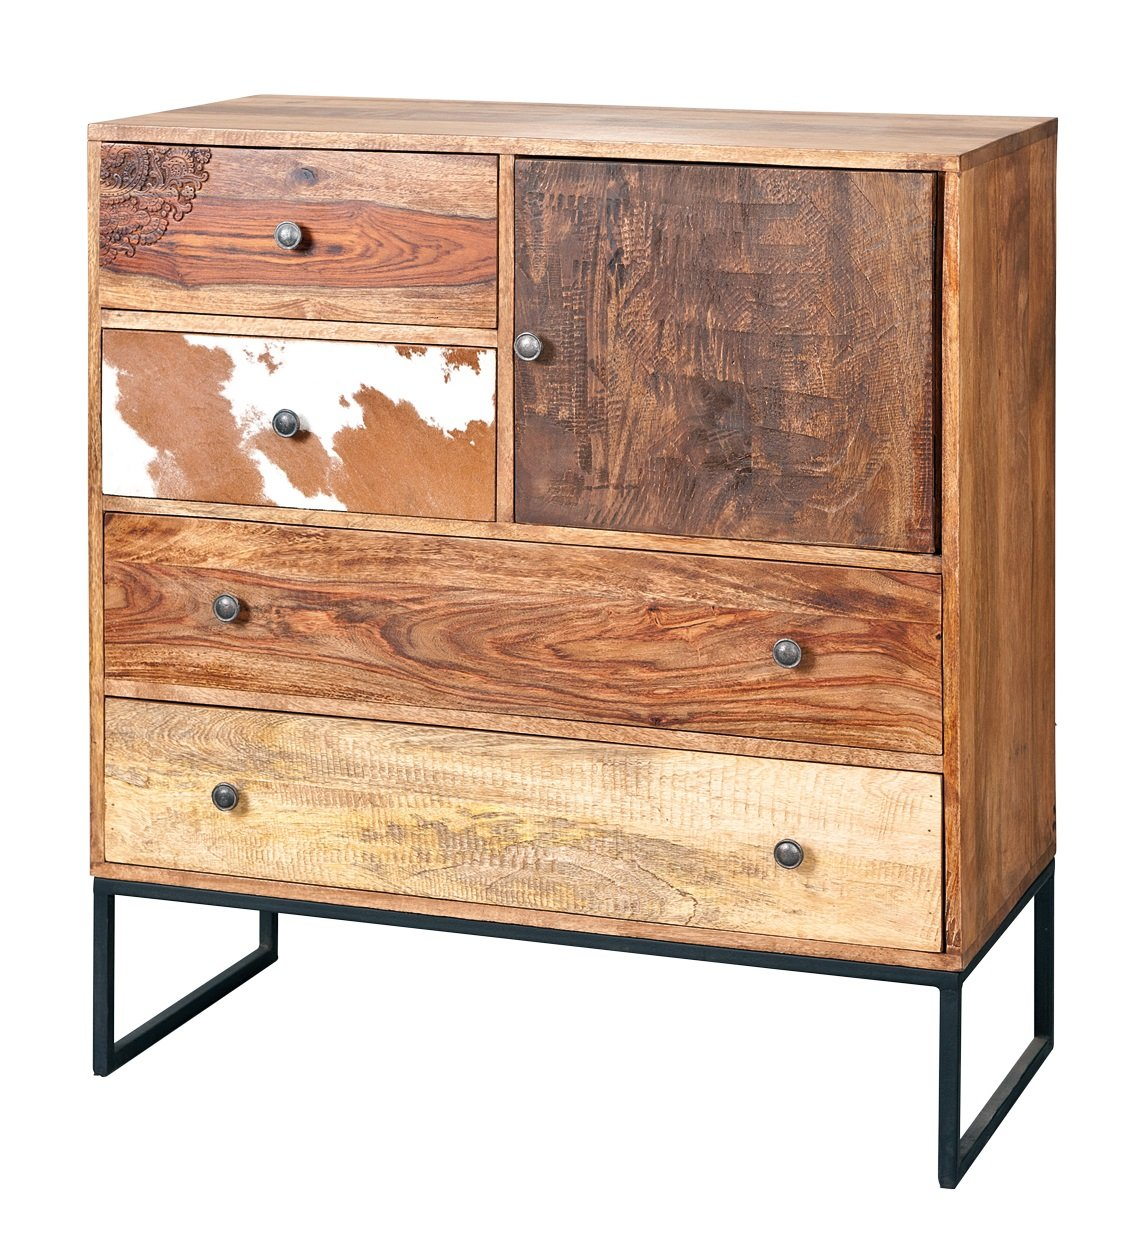 modern wood dresser look chest of drawers in mango wood 25607 furniture 12649